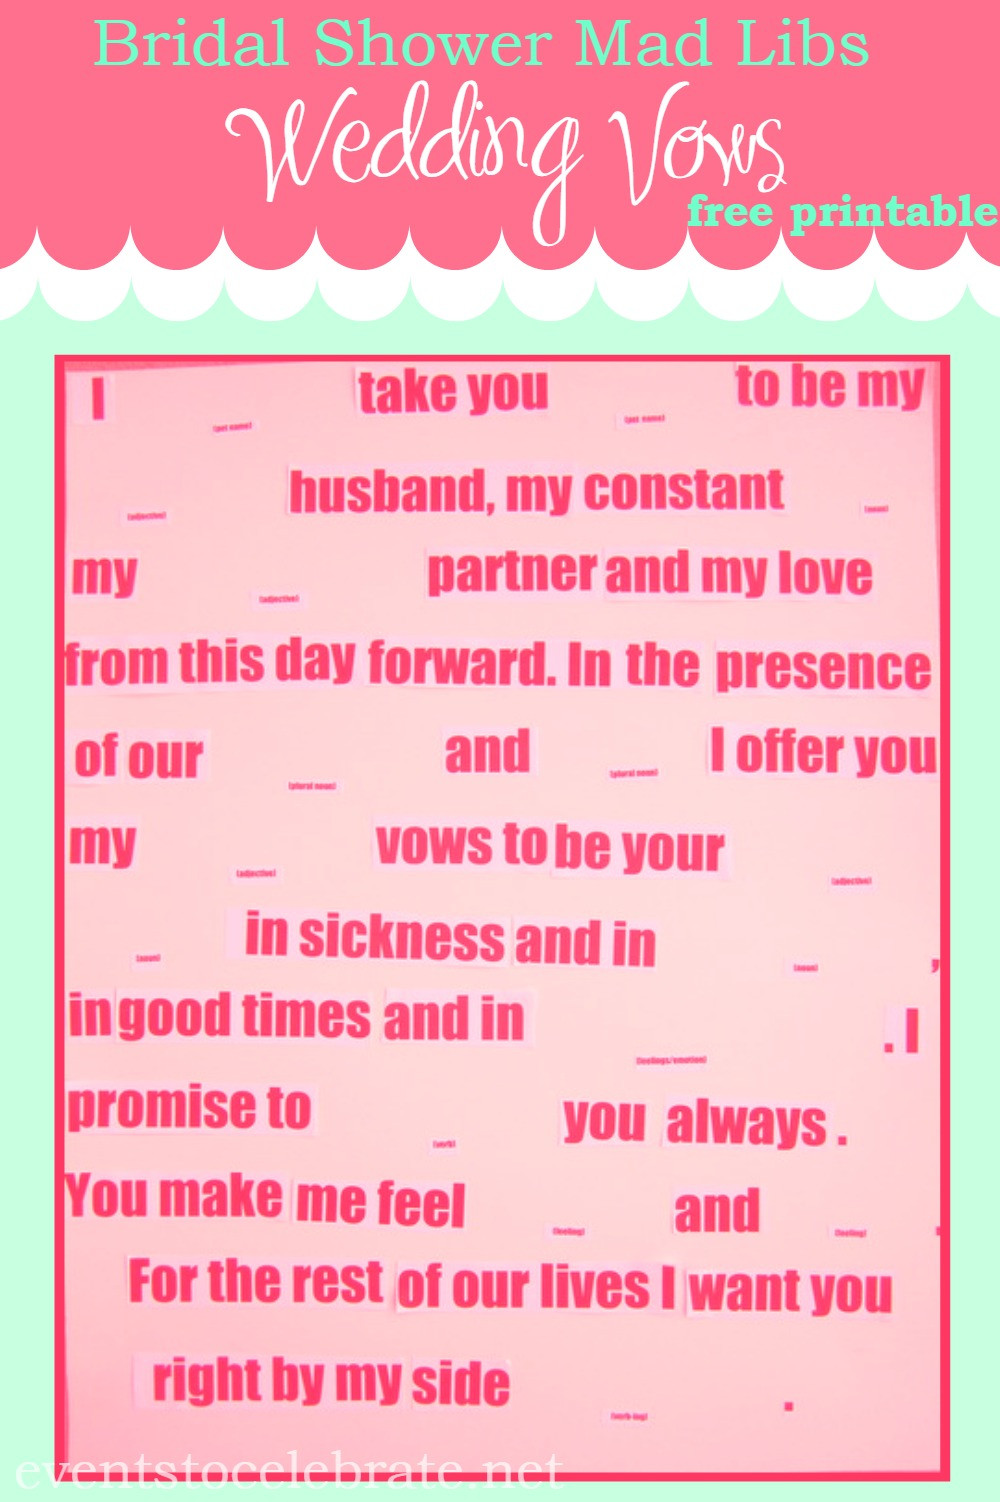 Funny Wedding Vows  Mad Libs Wedding Vows events to CELEBRATE